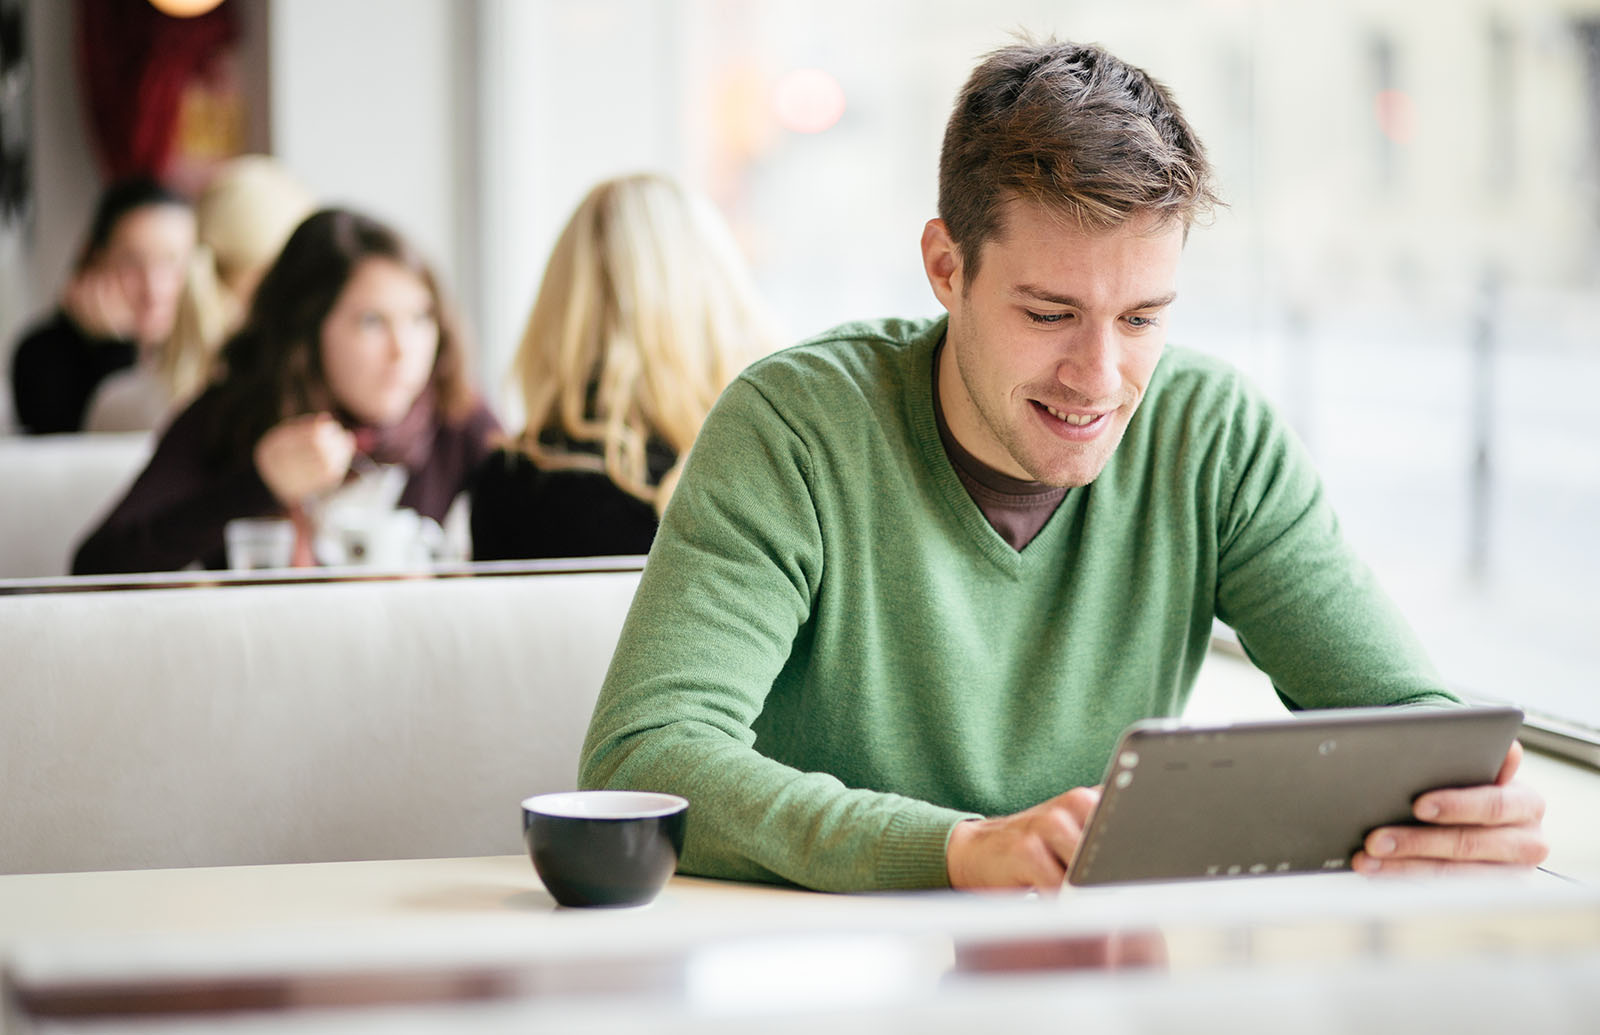 Student looking up information on a tablet computer